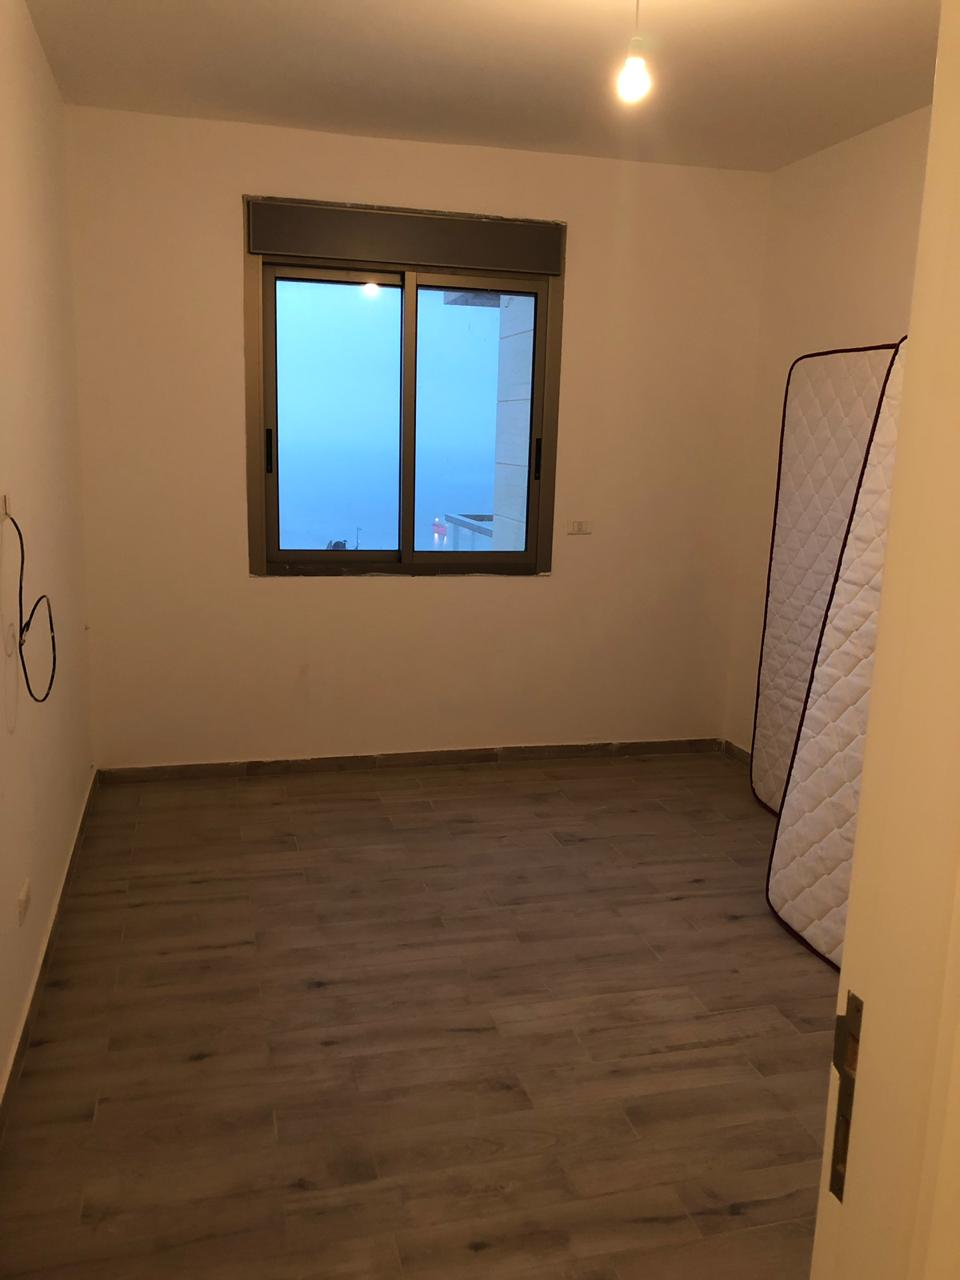 Apartment for sale in Bsalim, real estate in Bsalim, buy sell properties in Bsalim